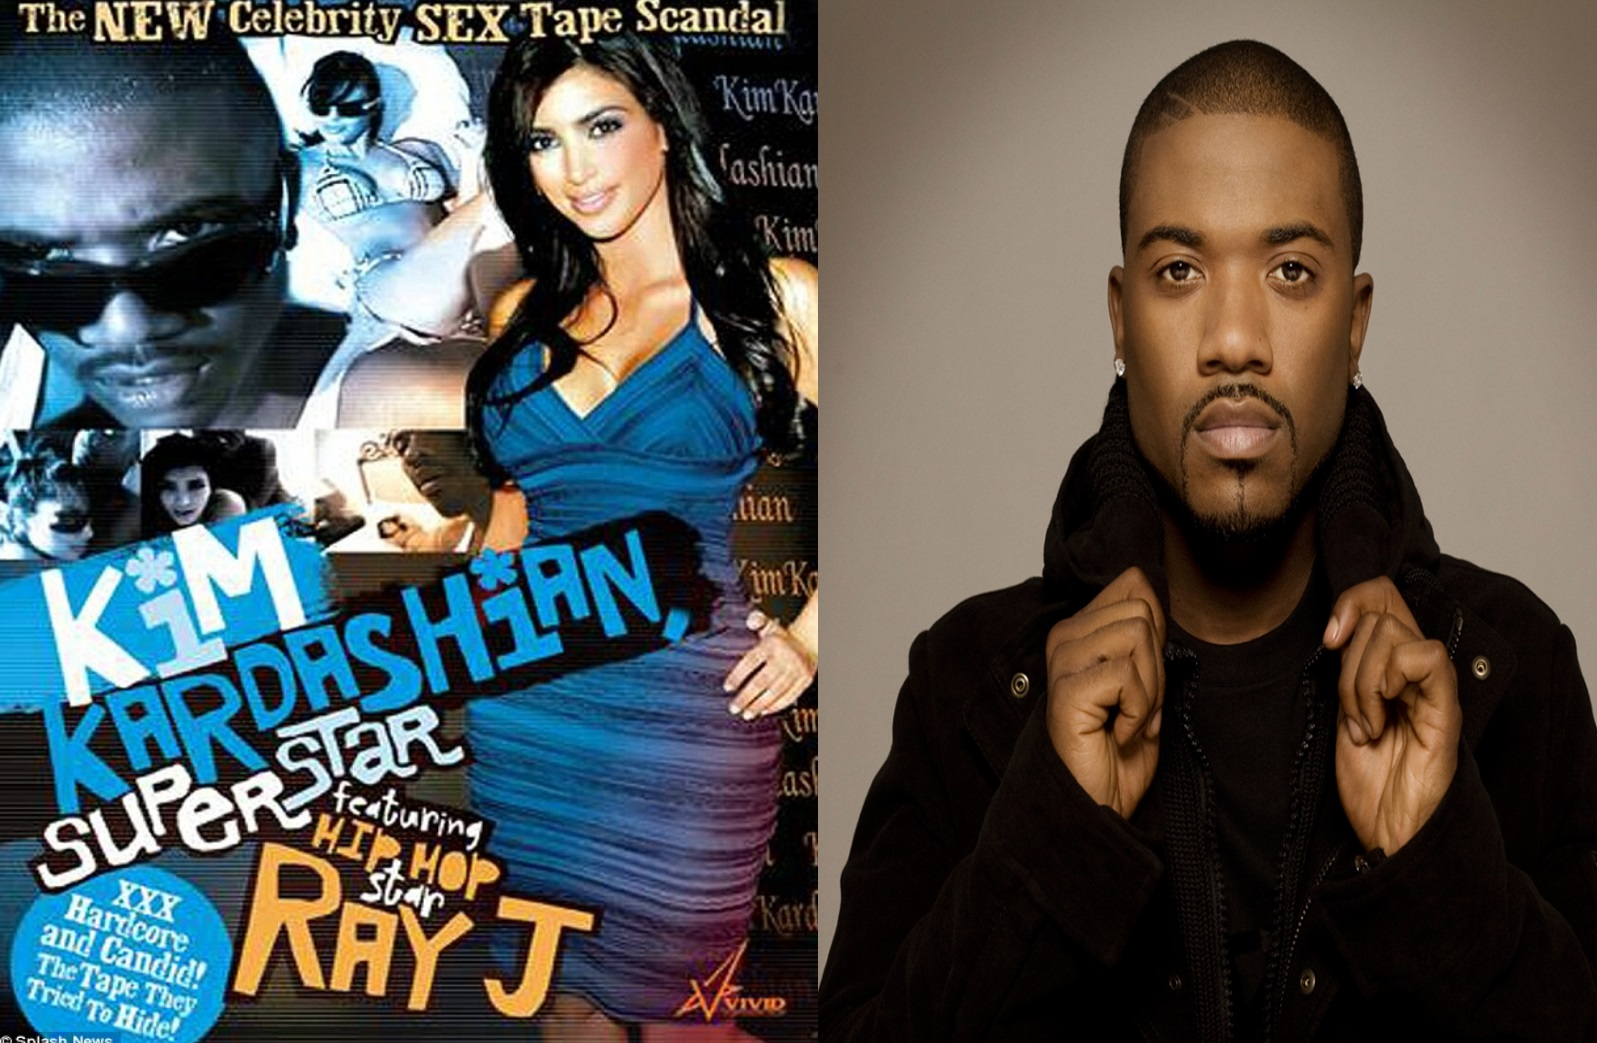 Ray J Sex Tape Danity Kane